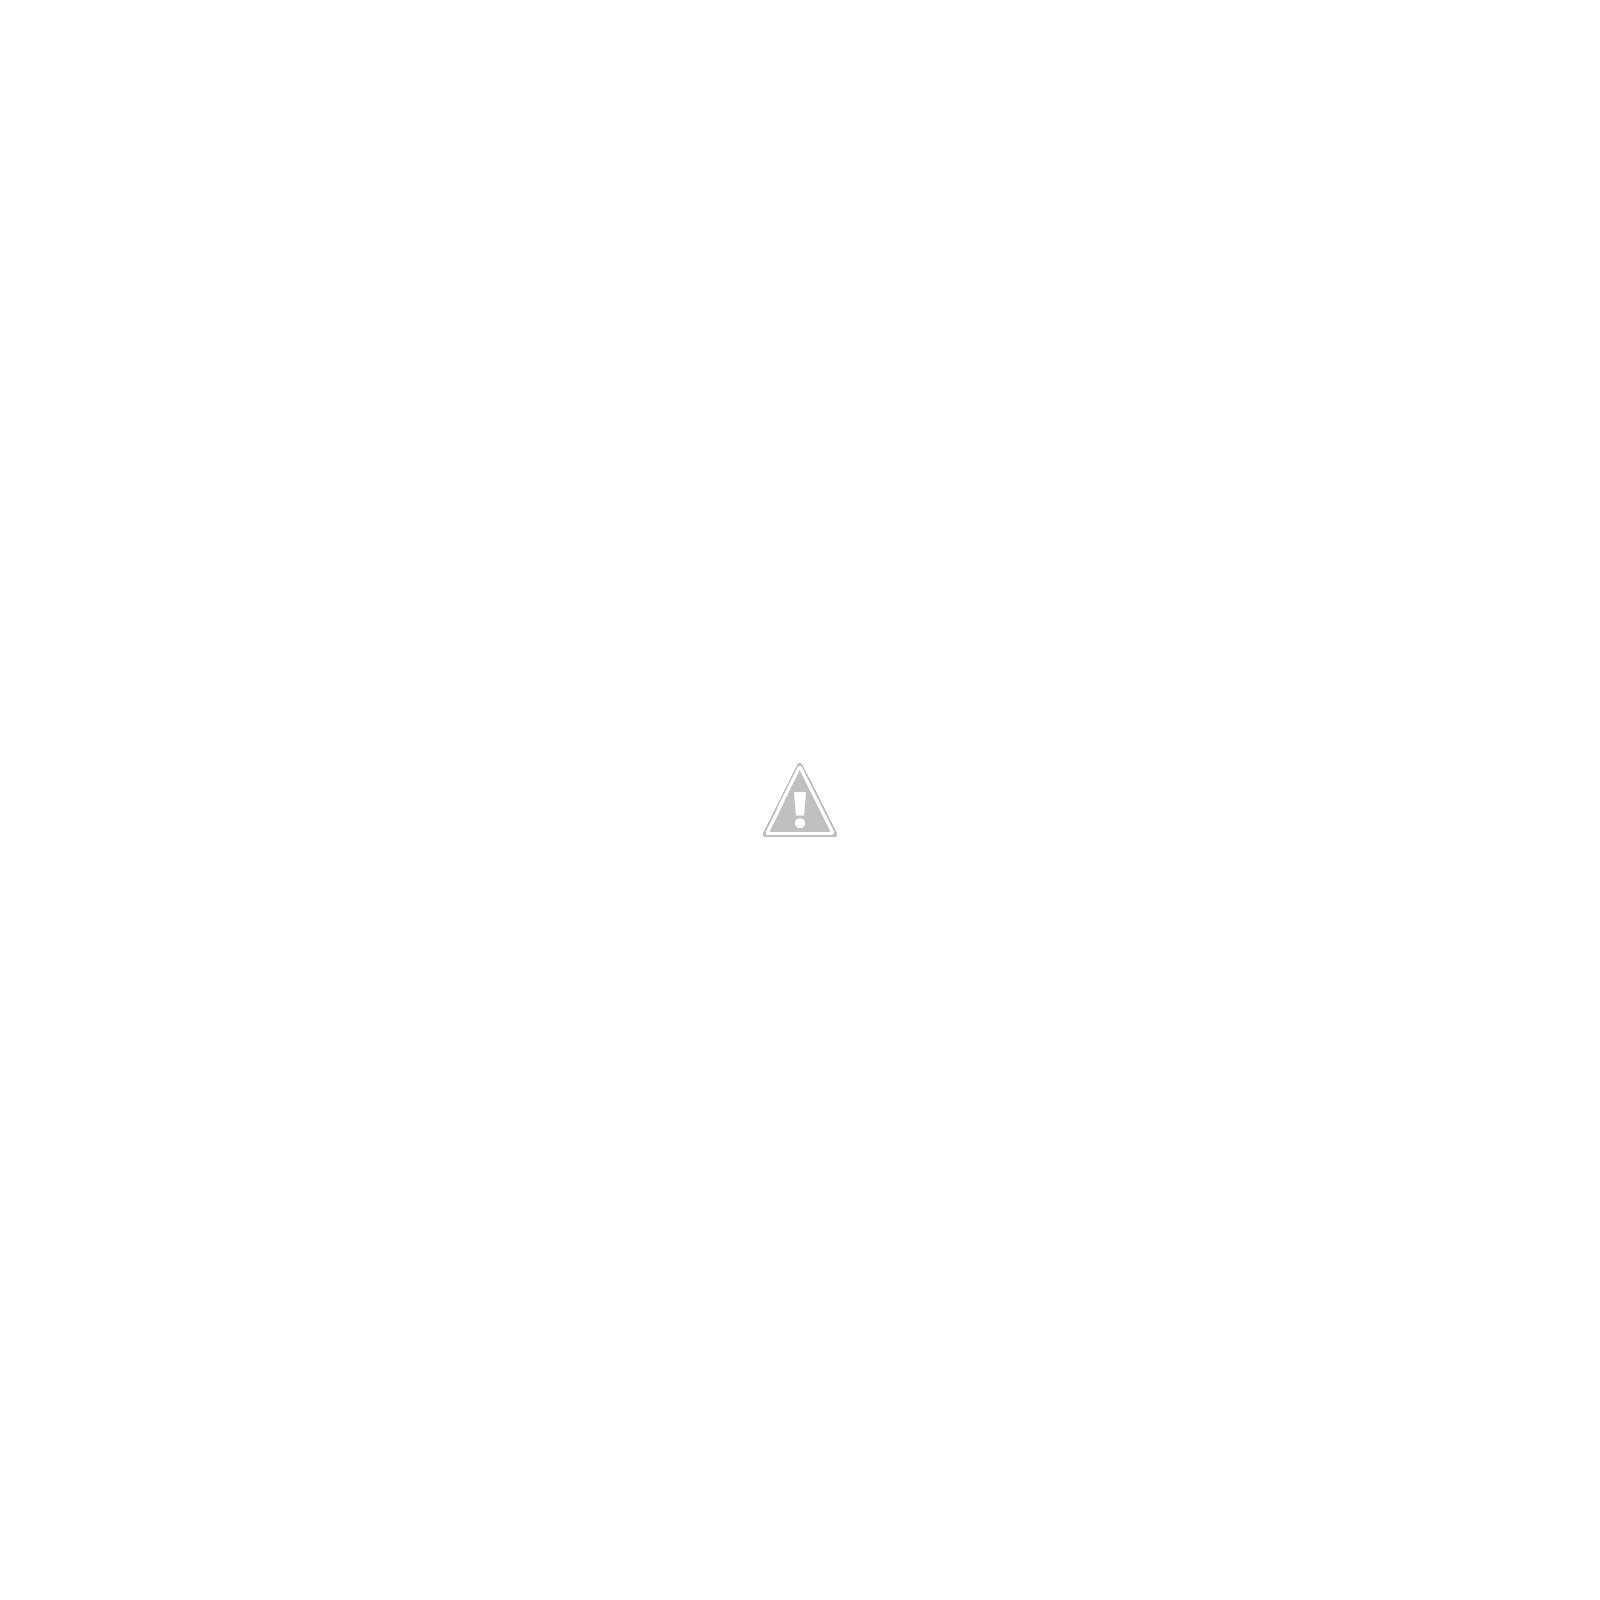 What Lies at the End - Chapter 22